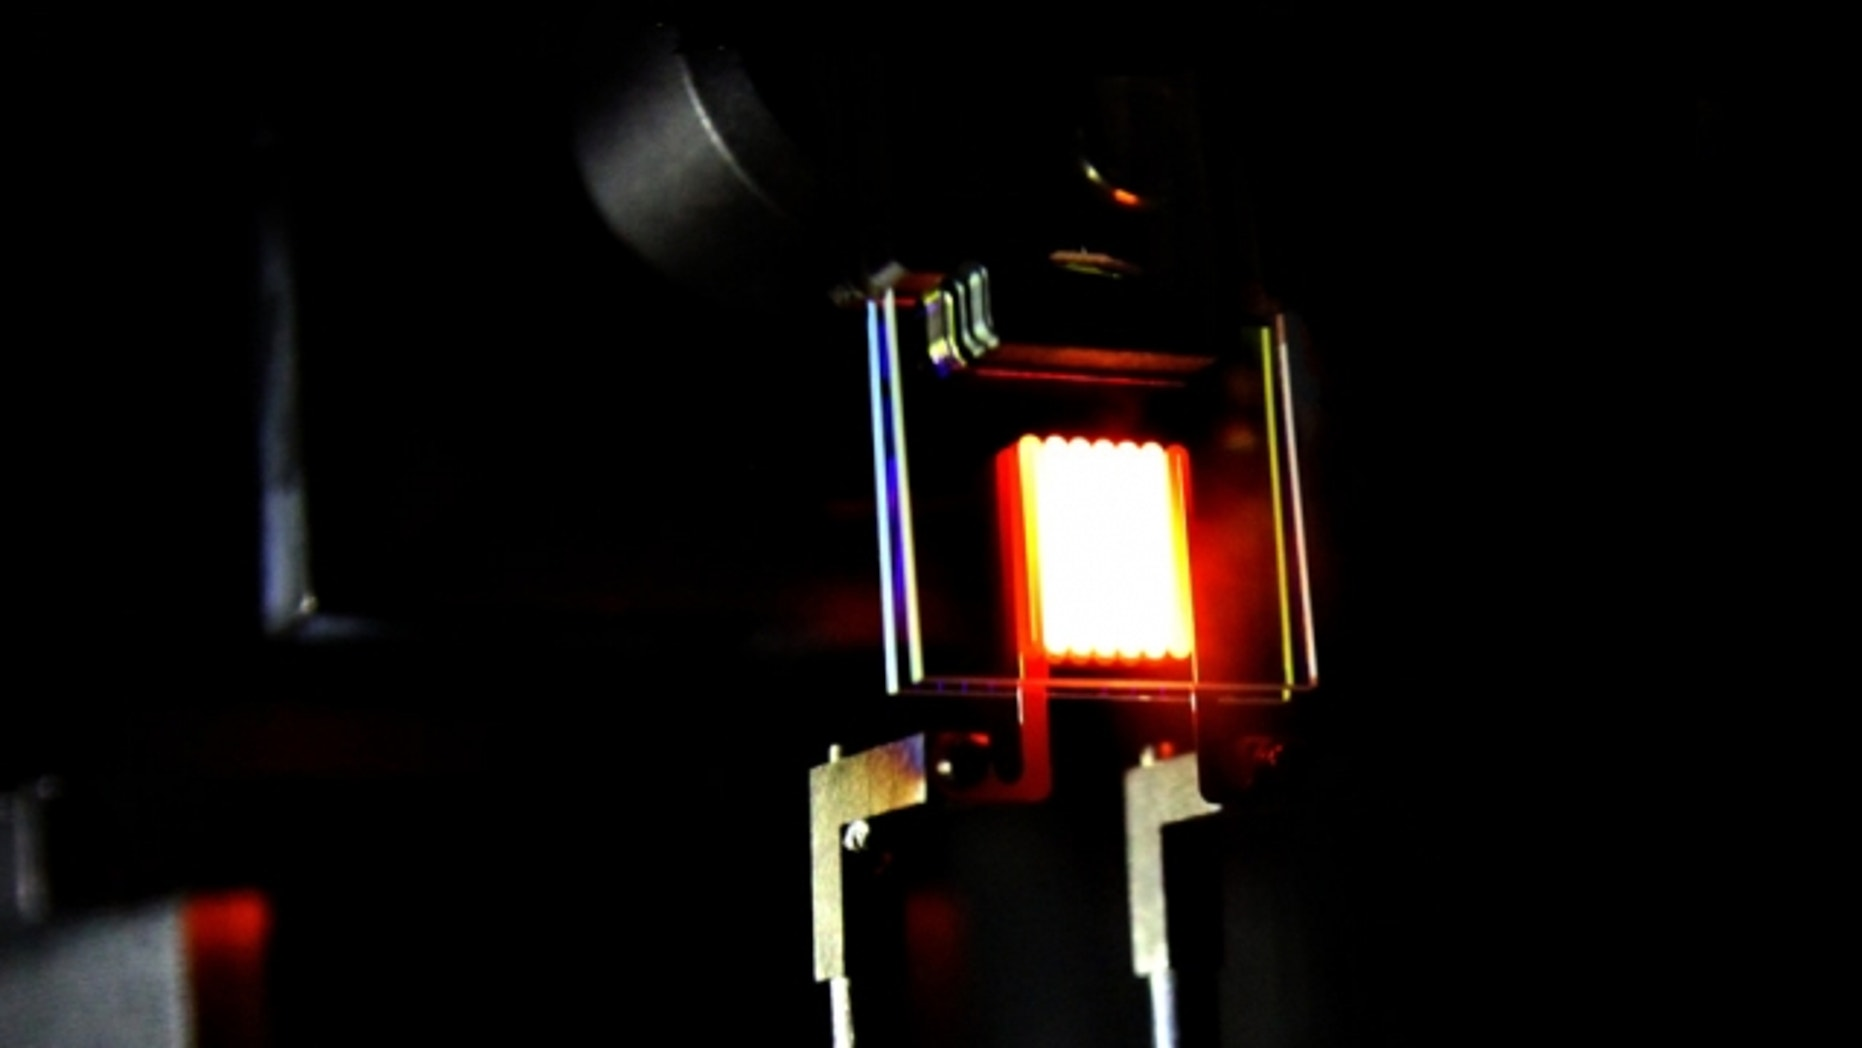 A proof-of-concept device built by MIT researchers demonstrates the principle of a two-stage process to make incandescent bulbs more efficient. This device already achieves efficiency comparable to some compact fluorescent and LED bulbs.  (MIT researchers)